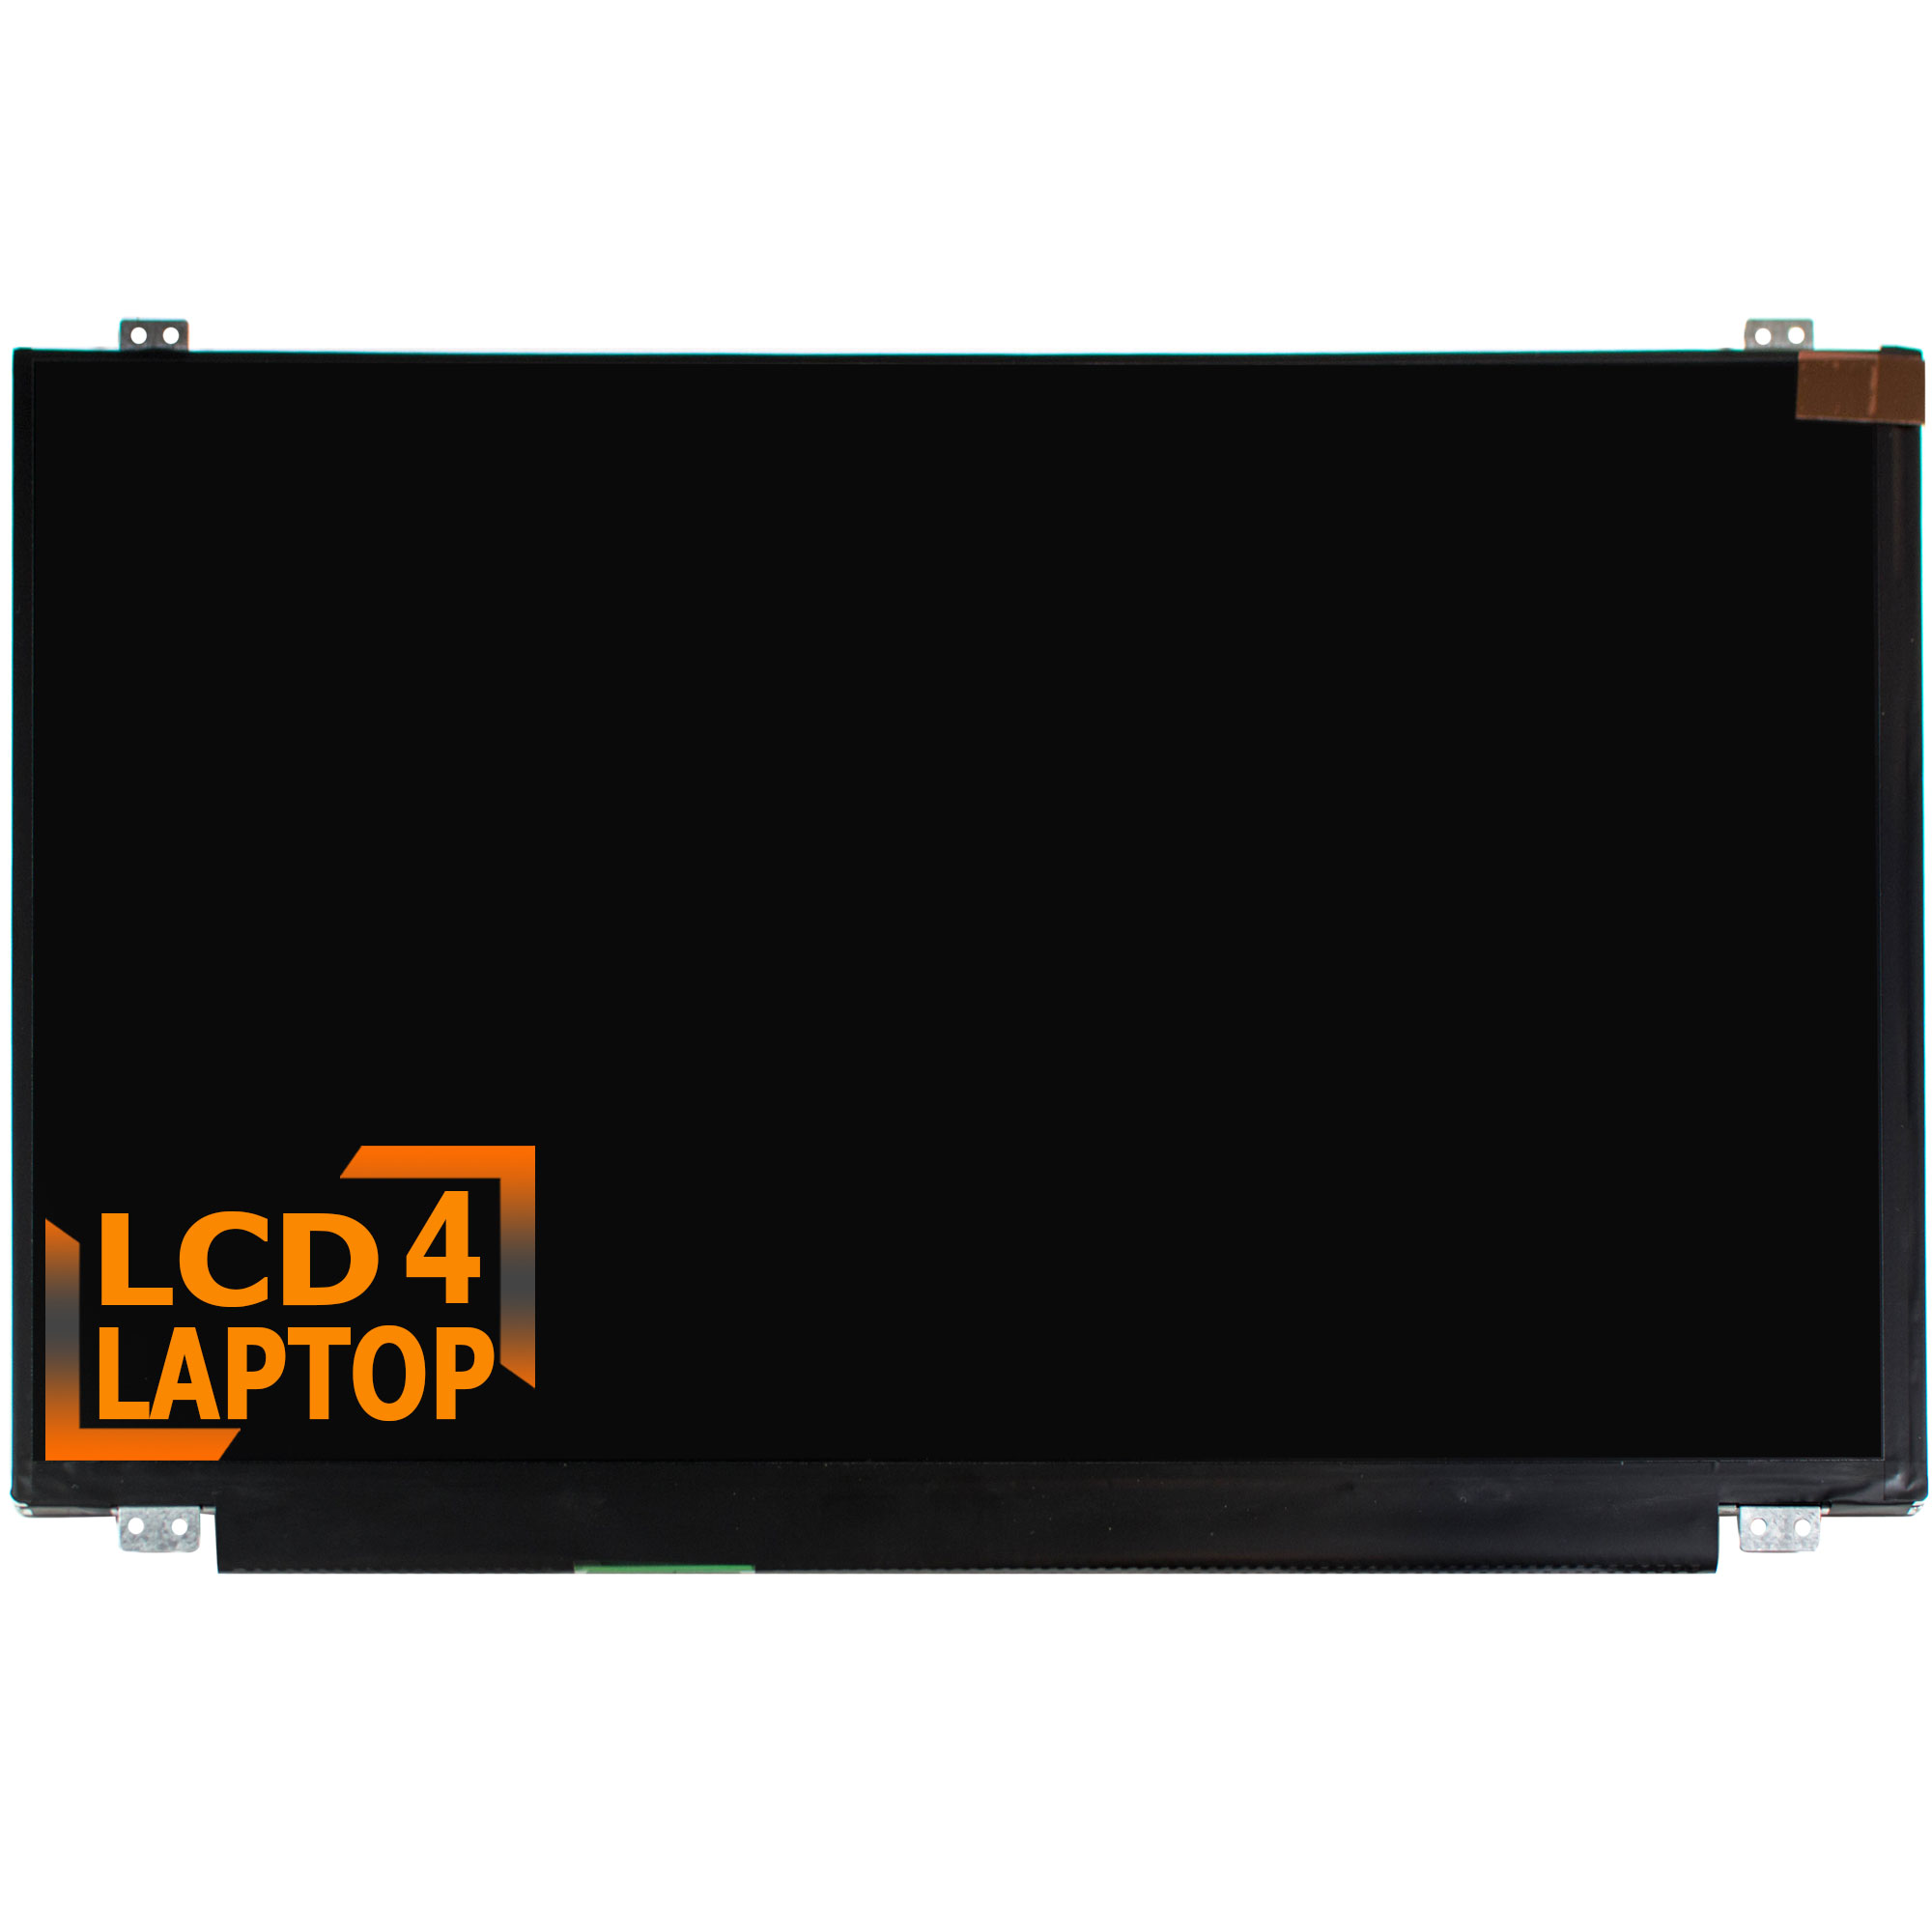 Reemplazo-HP-EliteBook-Folio-1040-G1-LP140WF6-SPB4-portatil-pantalla-14-034-LED-IPS